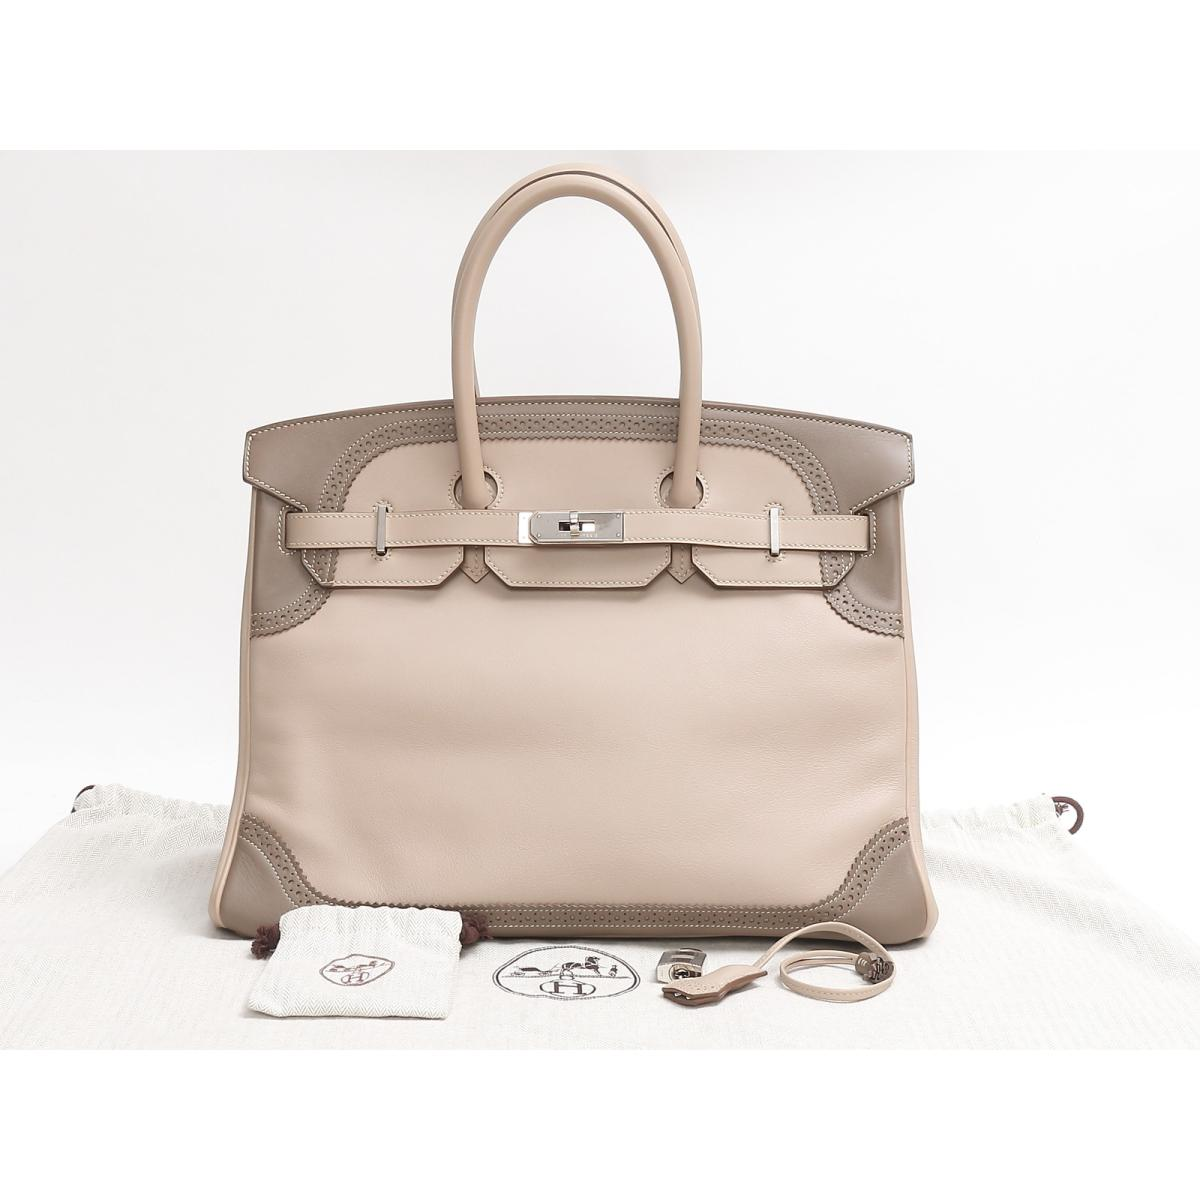 6ac77df7a0 (Free shipping) Auth HERMES Birkin 35 ghillies Hand tote bag Swift leather  Argile Etoupe SHW Used